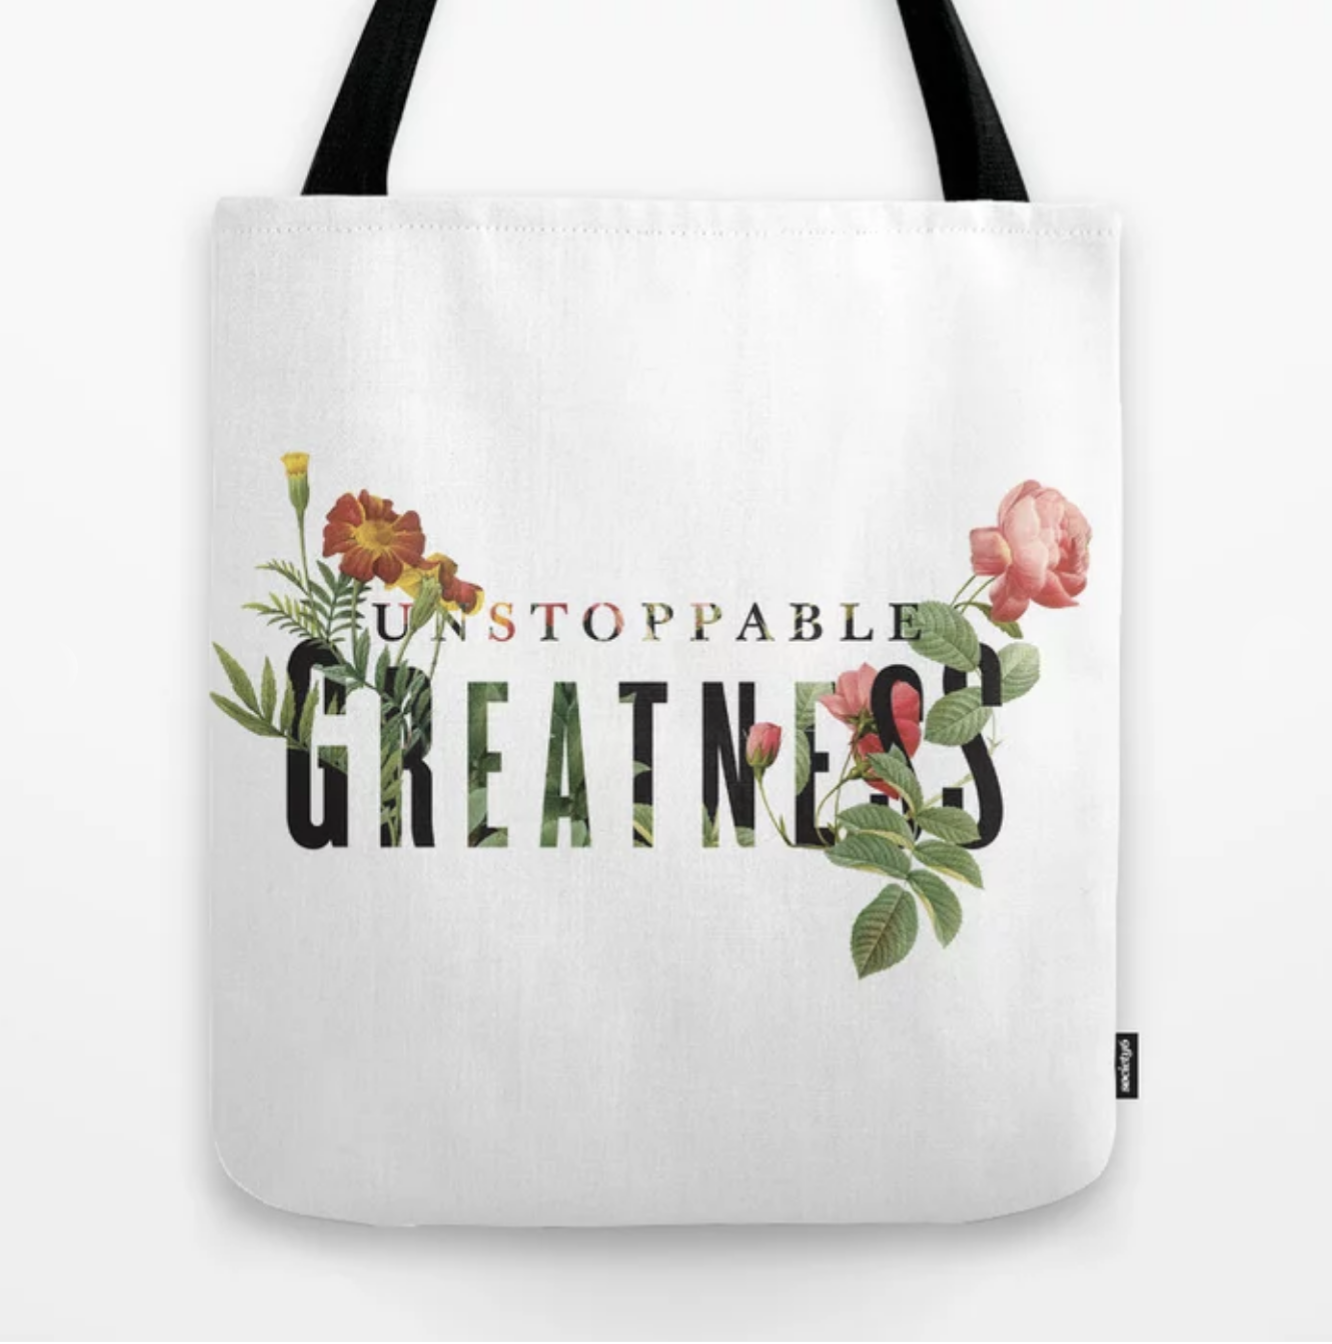 TOTE_Unstoppable Greatness1.png